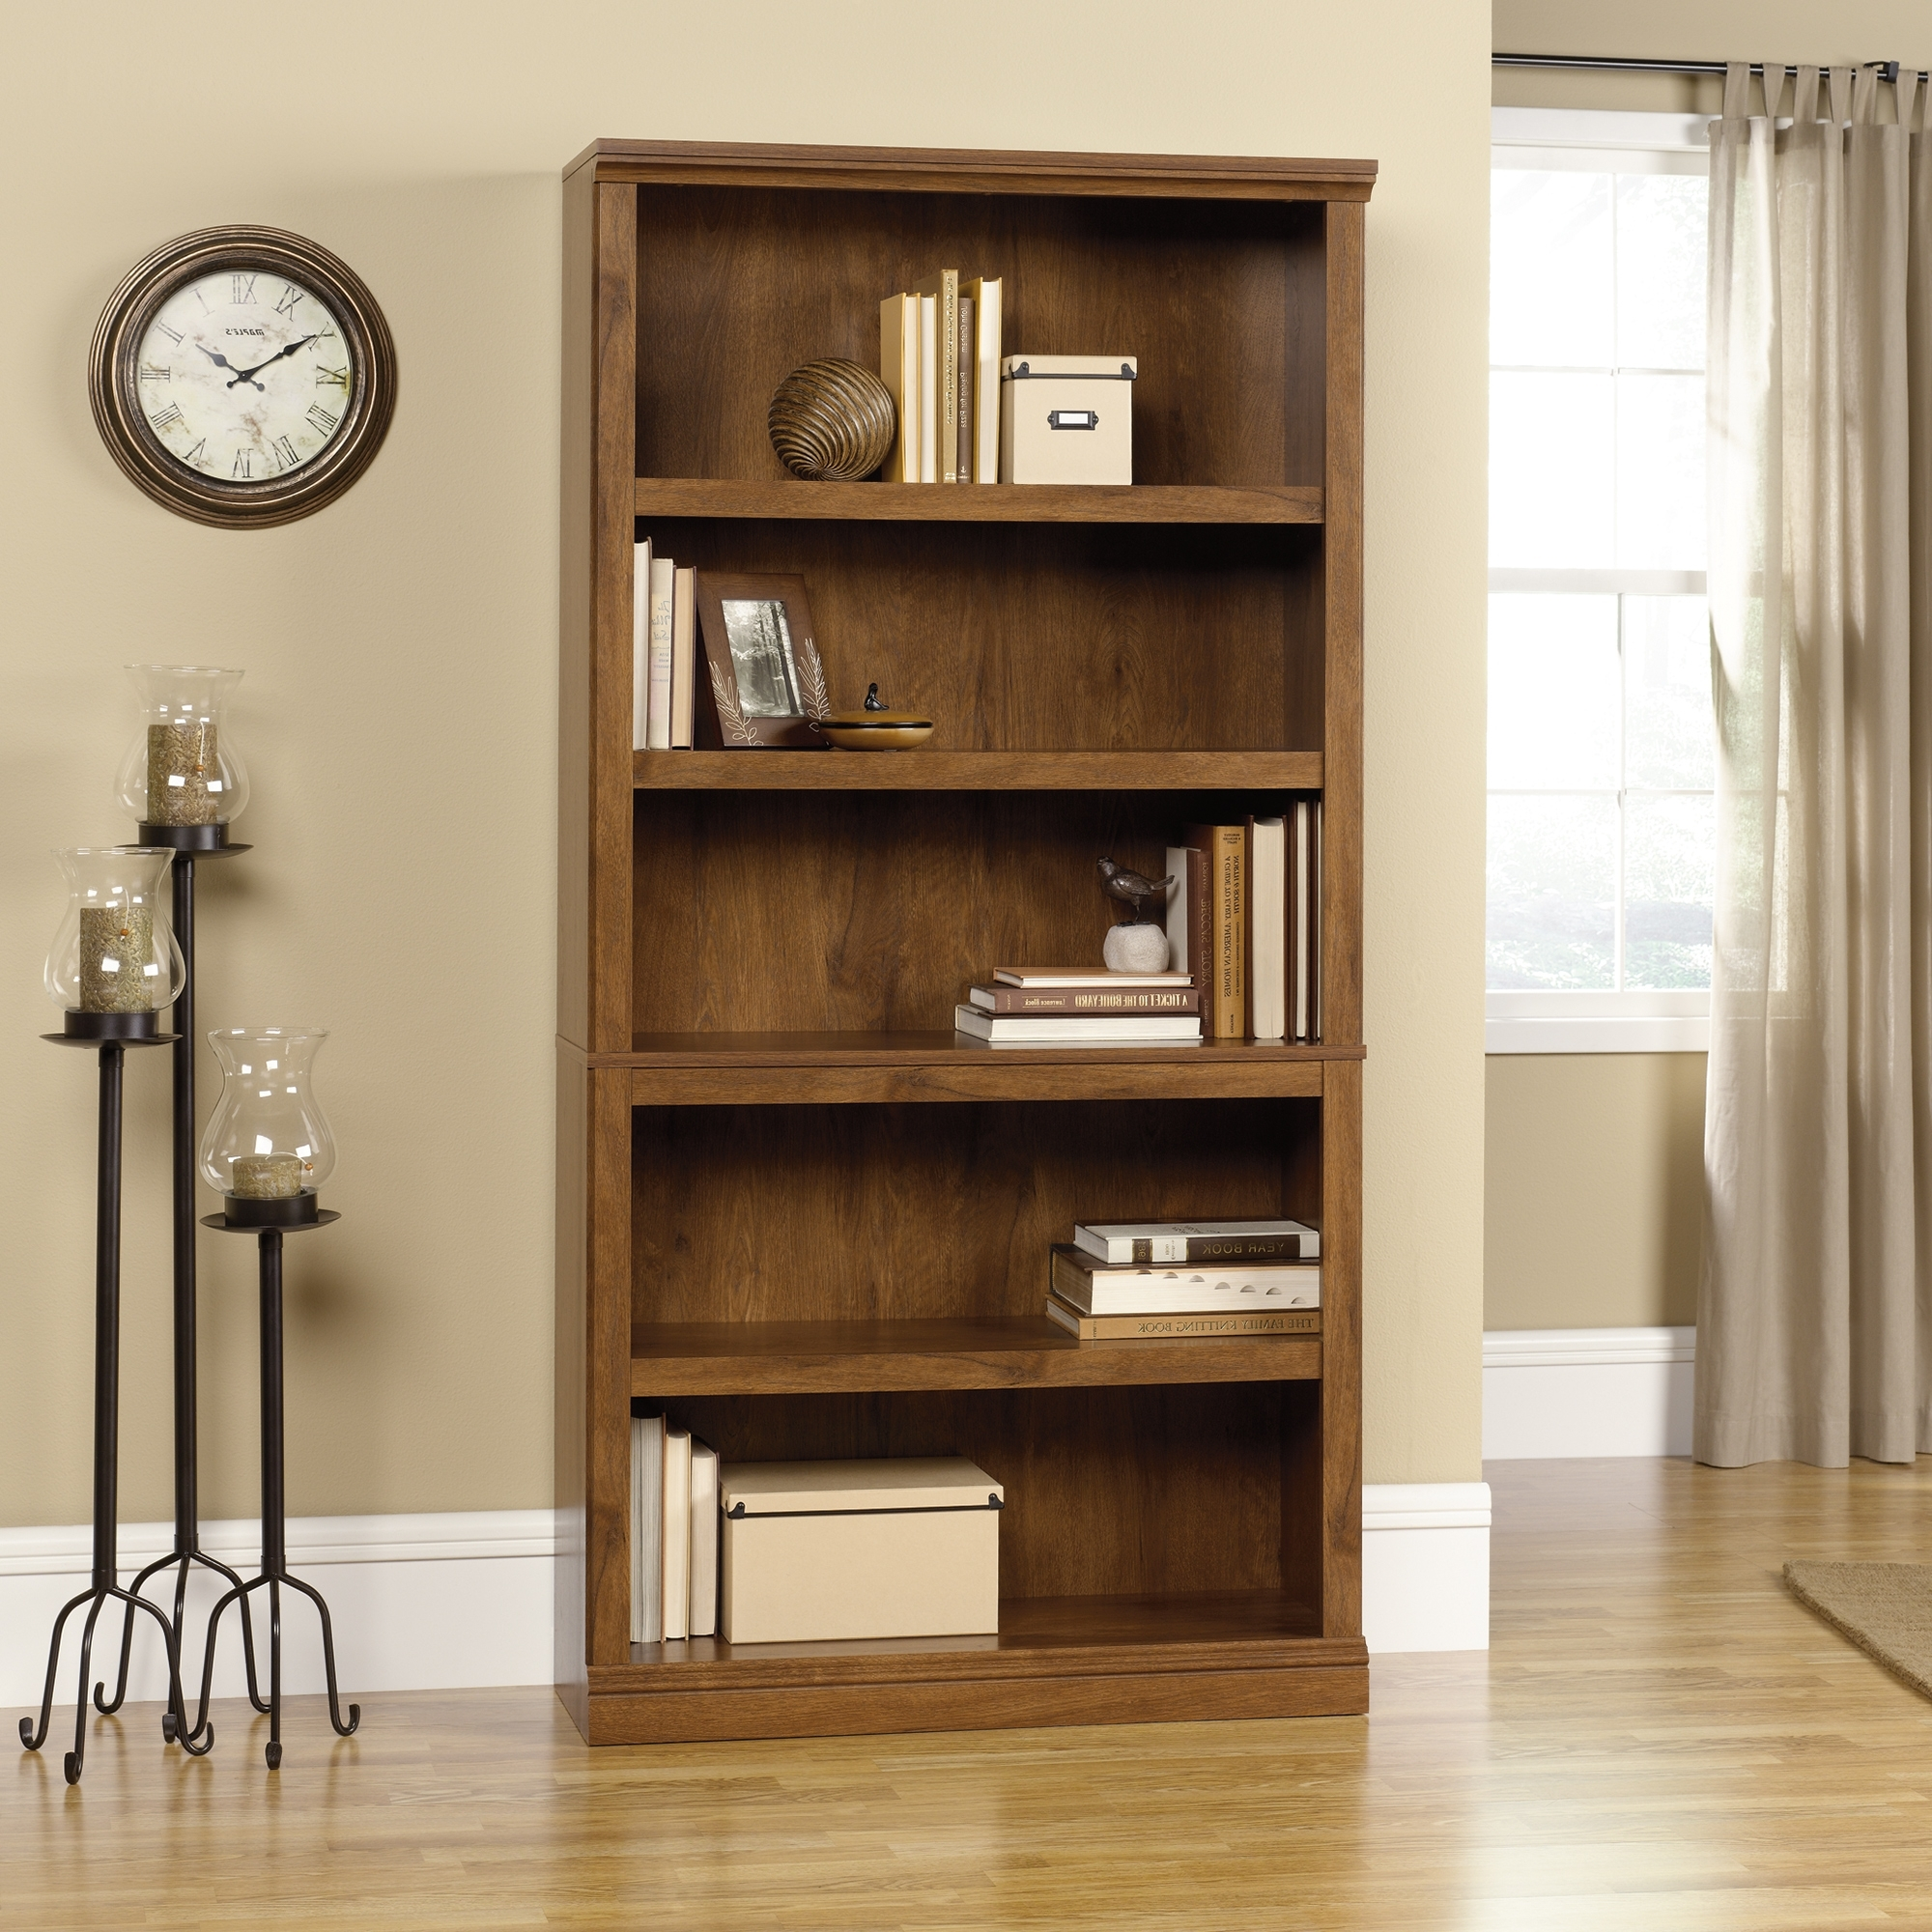 Favorite 36 Inch Wide Bookcases Regarding Bookcase: Organize Your Books With Best Sauder Bookcase Idea (View 13 of 15)